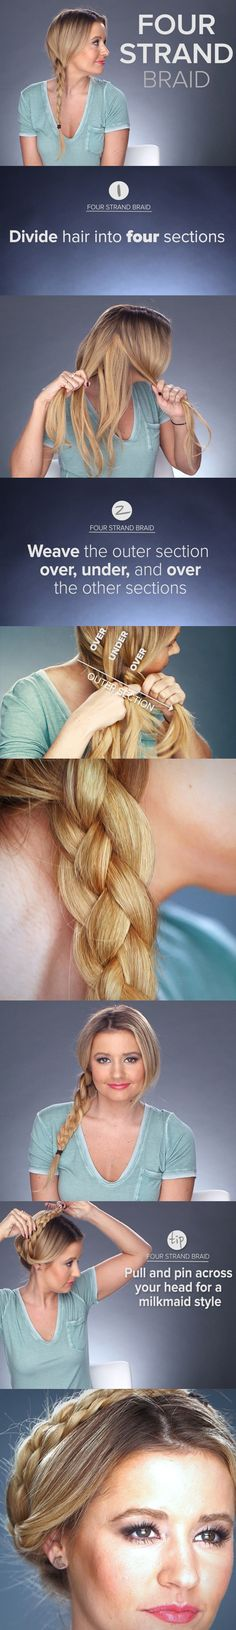 Four-Strand Braid 101